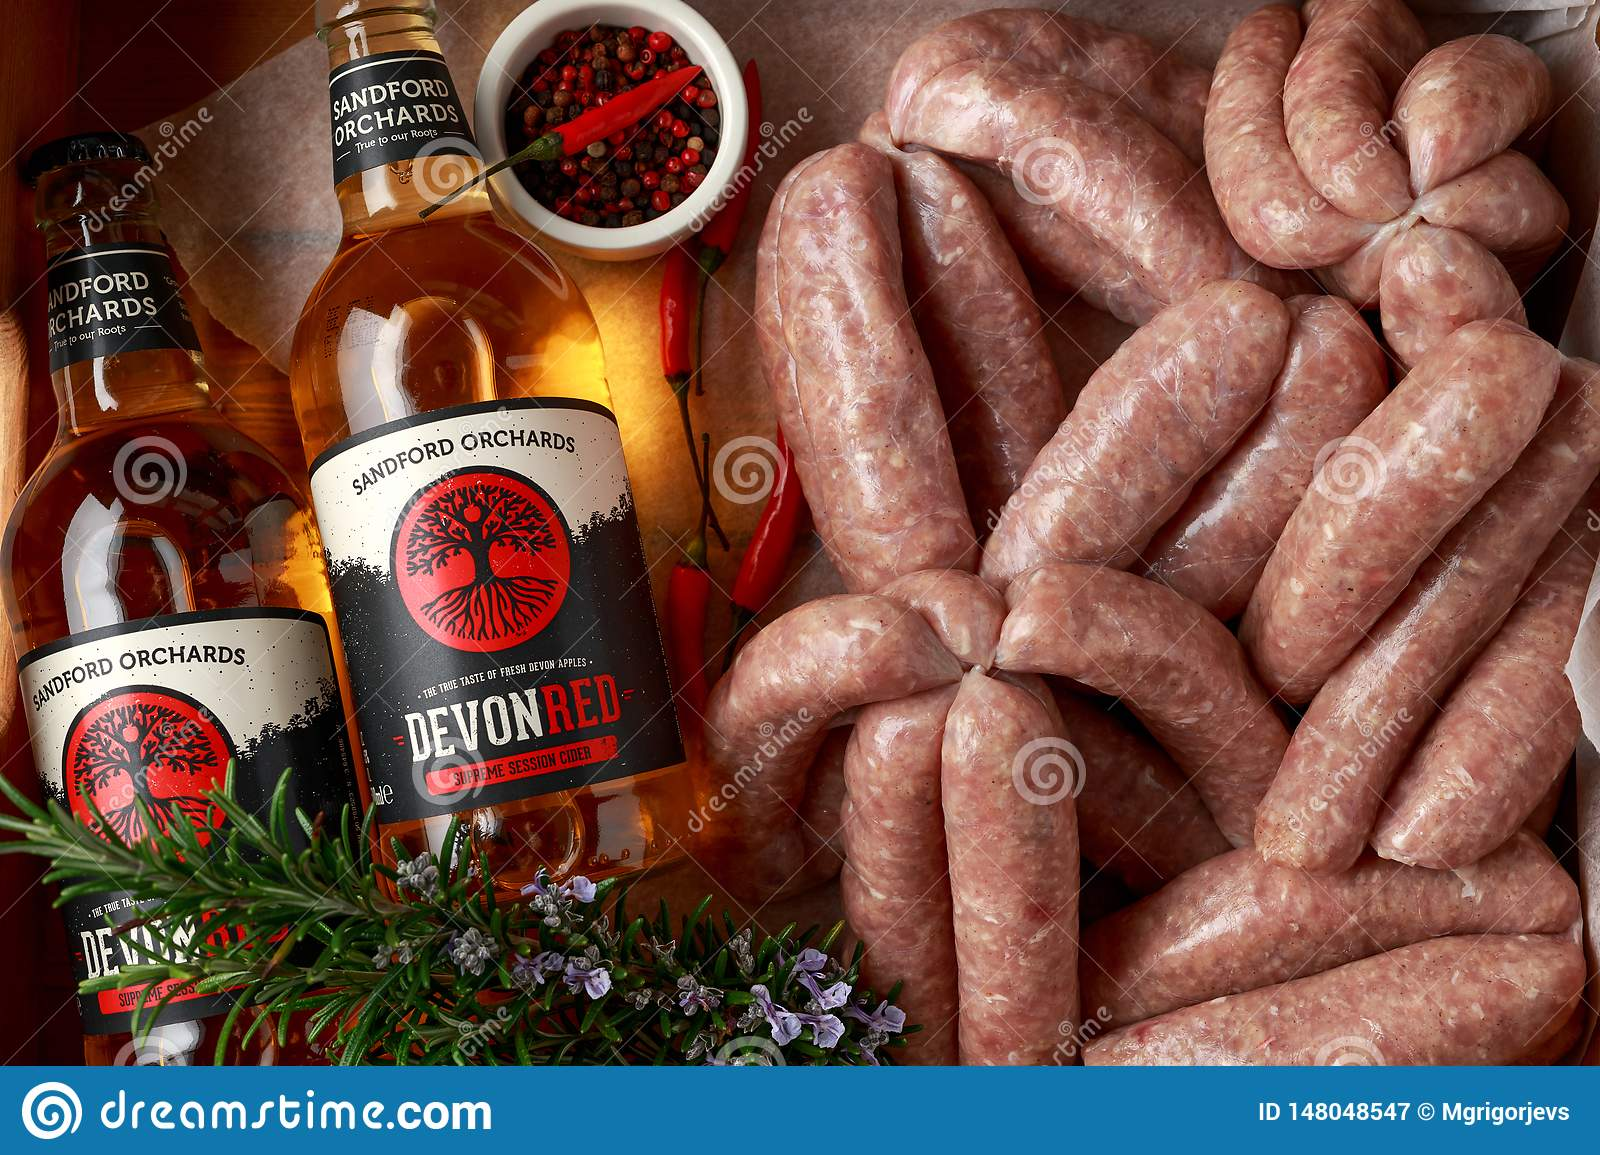 Freshly made raw butchers sausages in skins with Sanford orchards apple cider, Devon, United Kingdom, March 20, 2019.